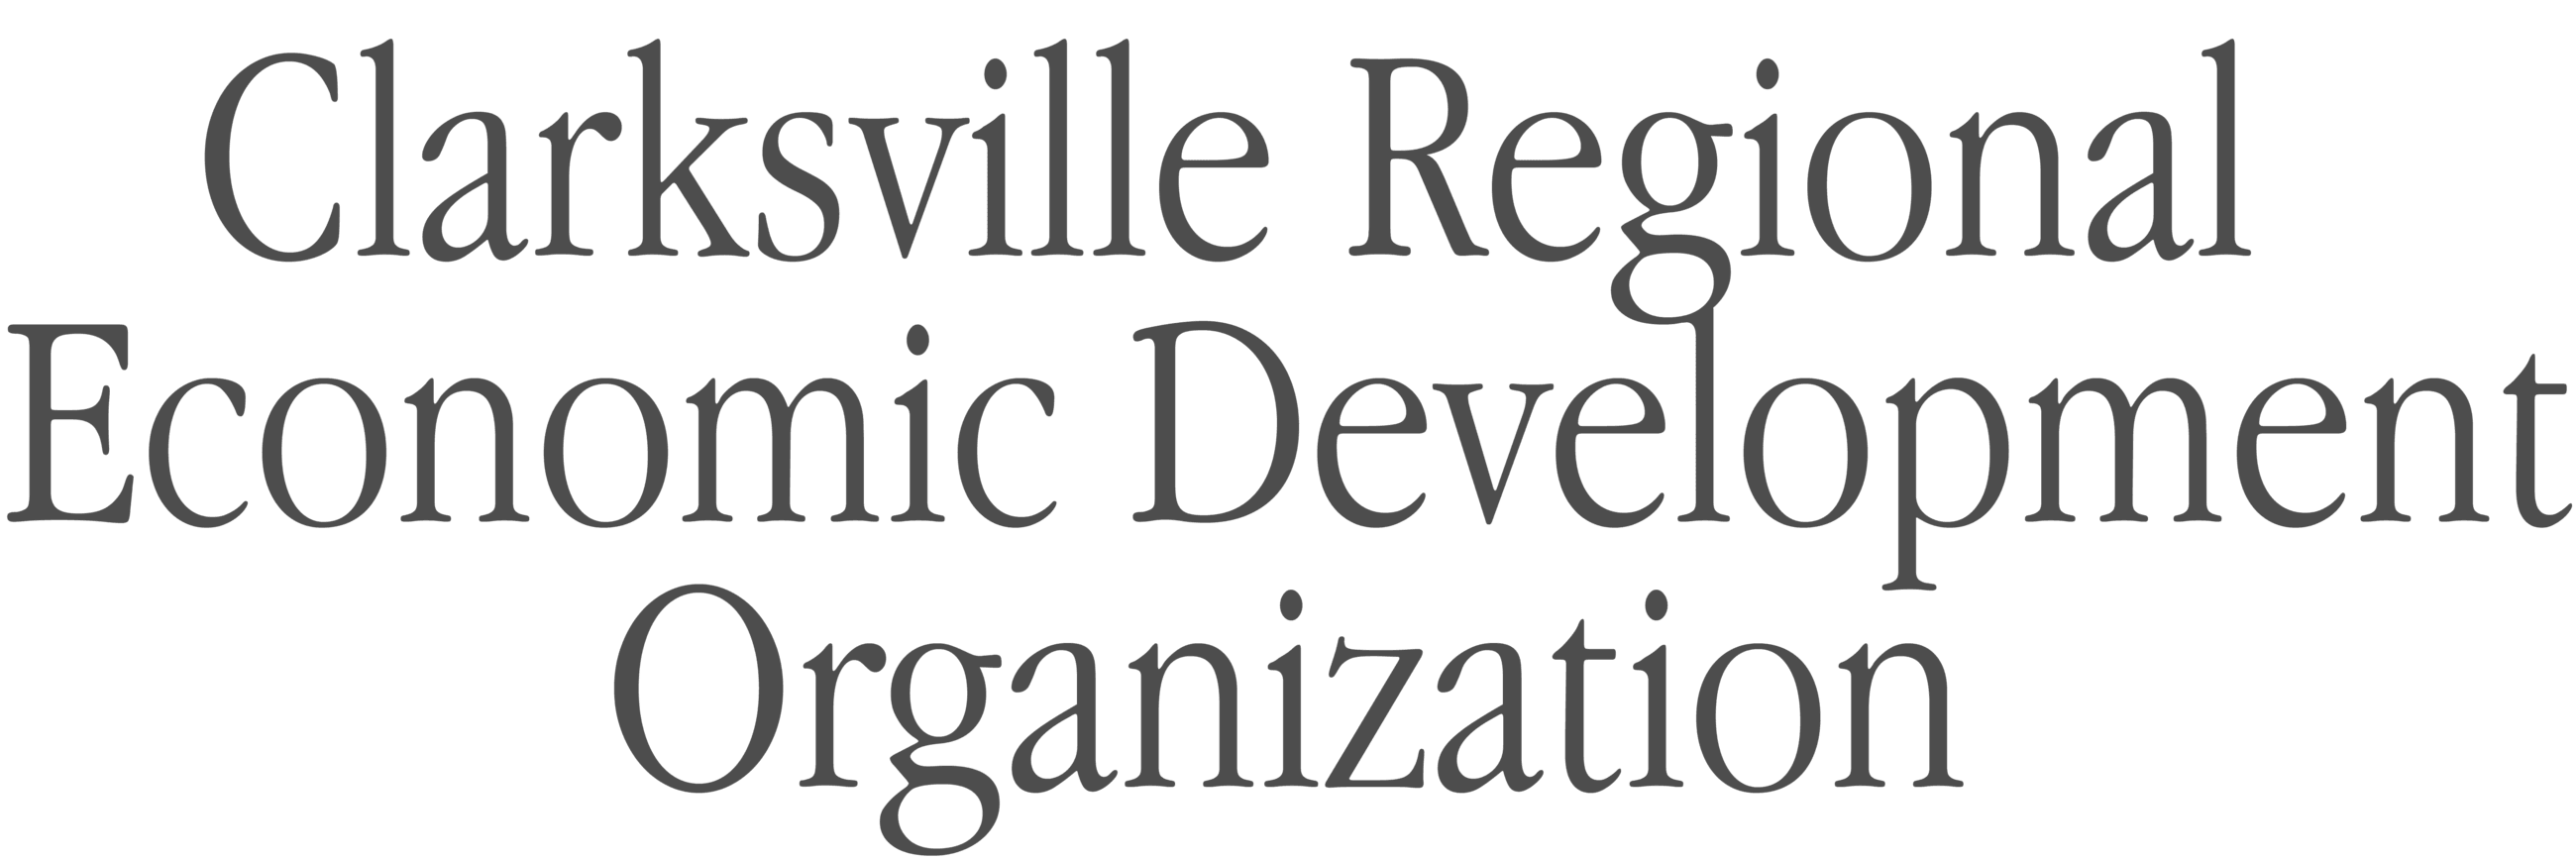 Clarksville Regional Economic Development Organization logo